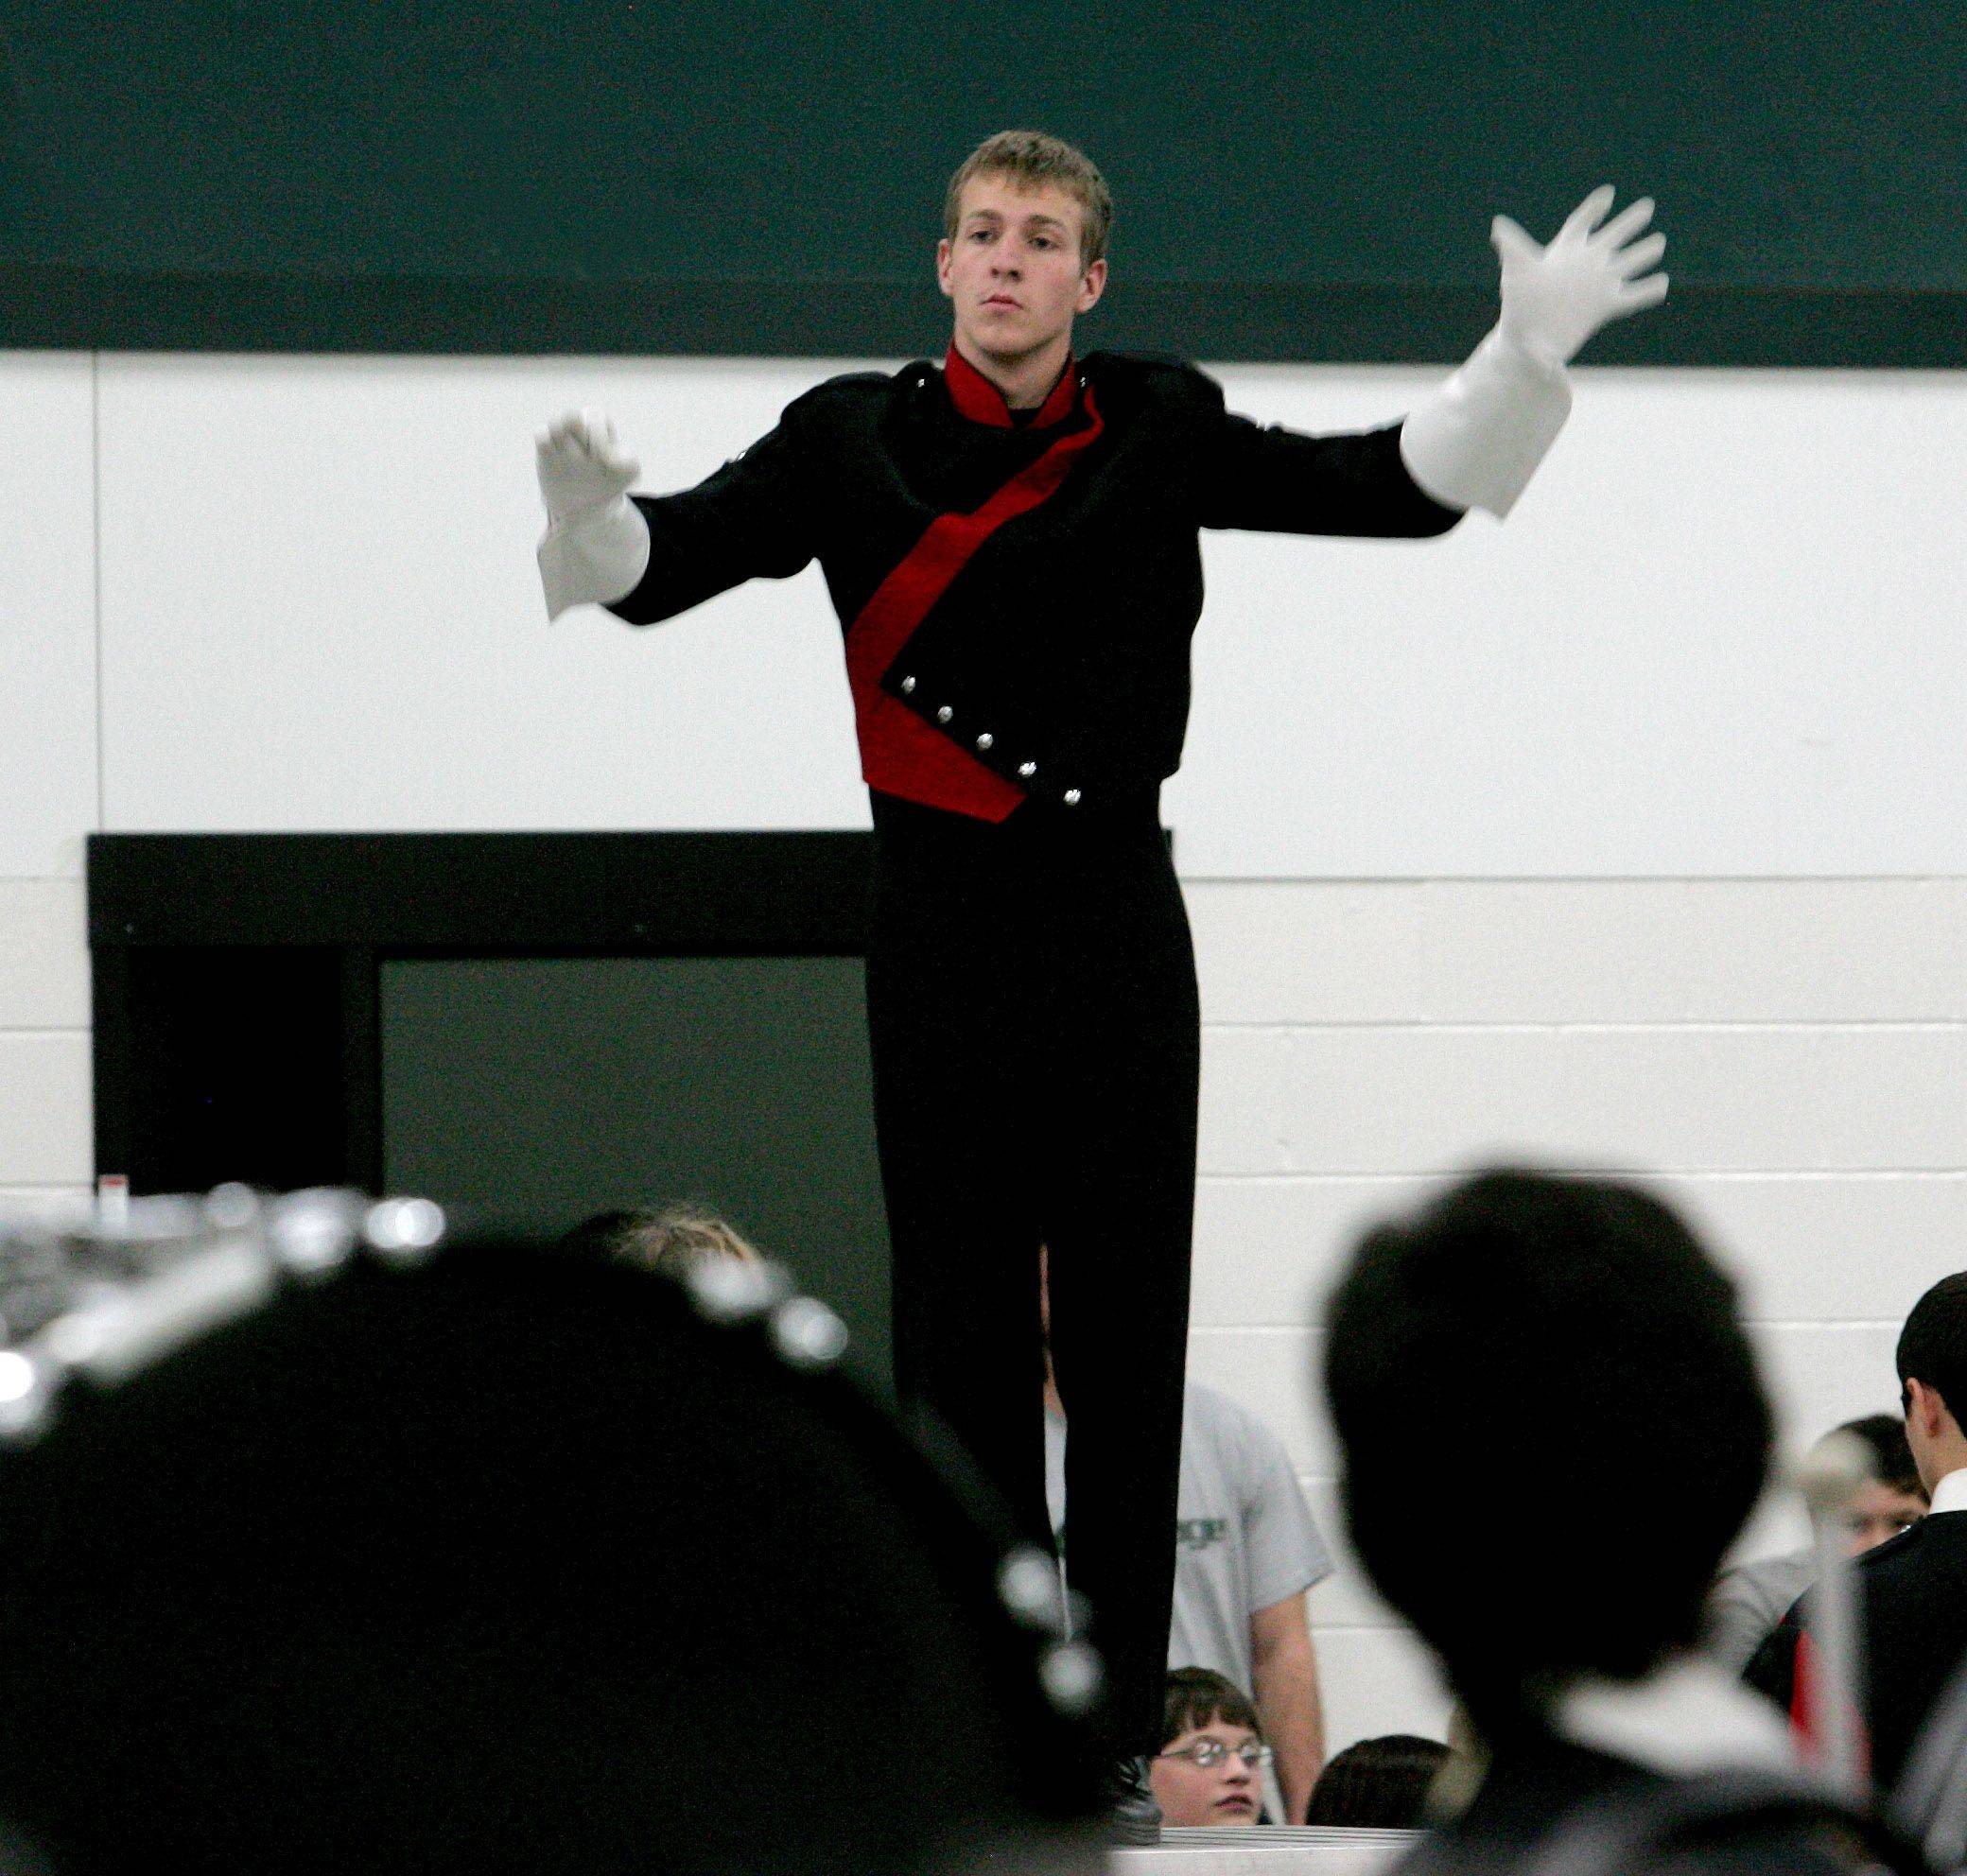 Naperville Central senior Alex Reeder will be one of two drum majors leading Macy's Great American Marching band in the Macy's Thanksgiving Day Parade.